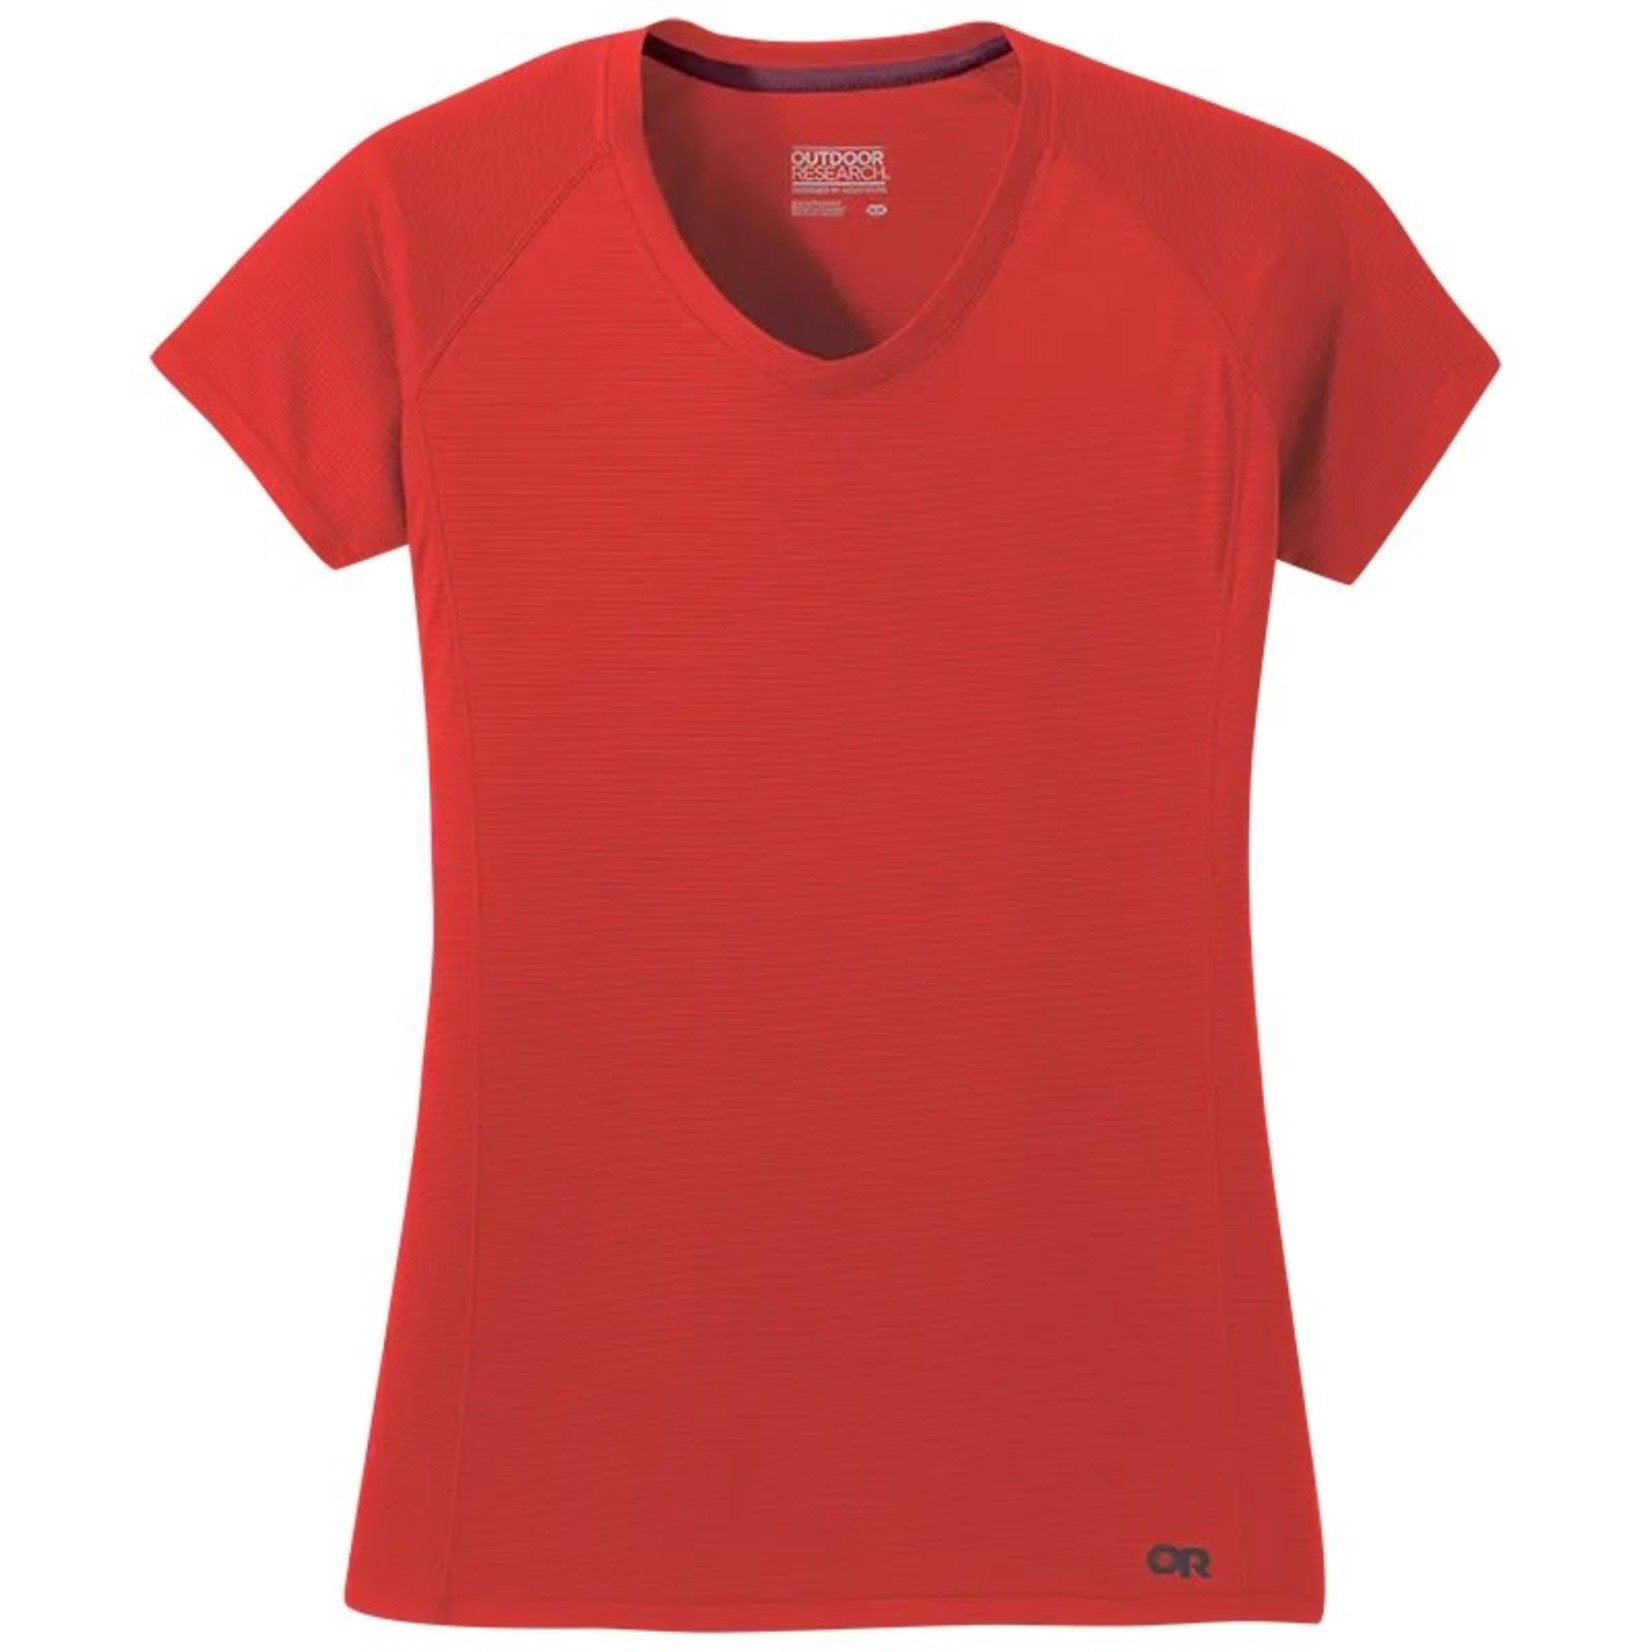 Outdoor Research T-shirt Outdoor Research Echo - Femme